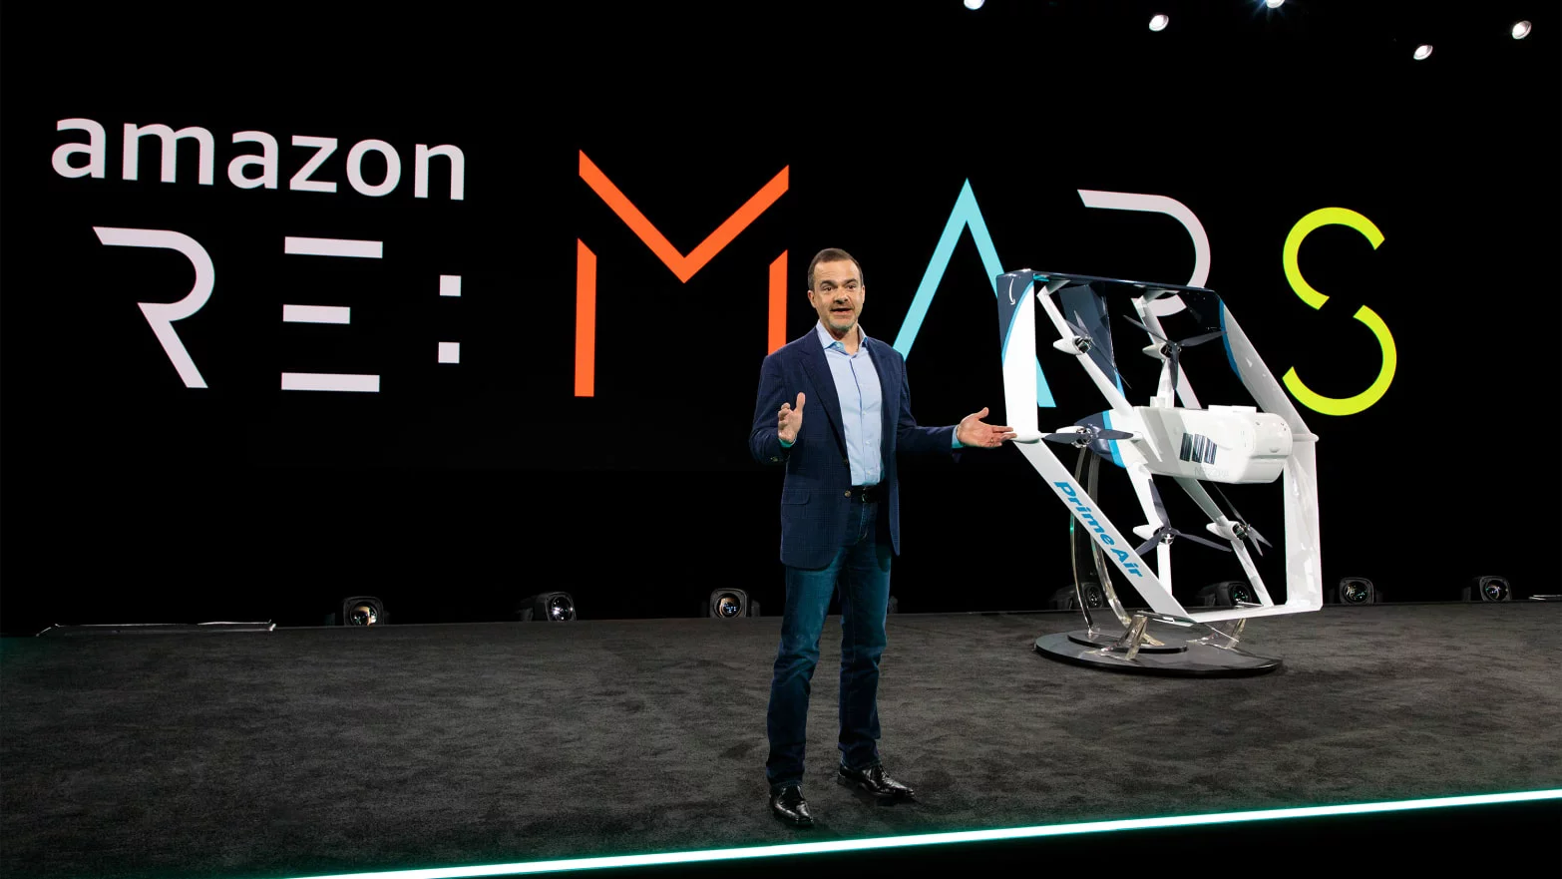 Amazon's Ambitious Drone Delivery Plans Take Shape